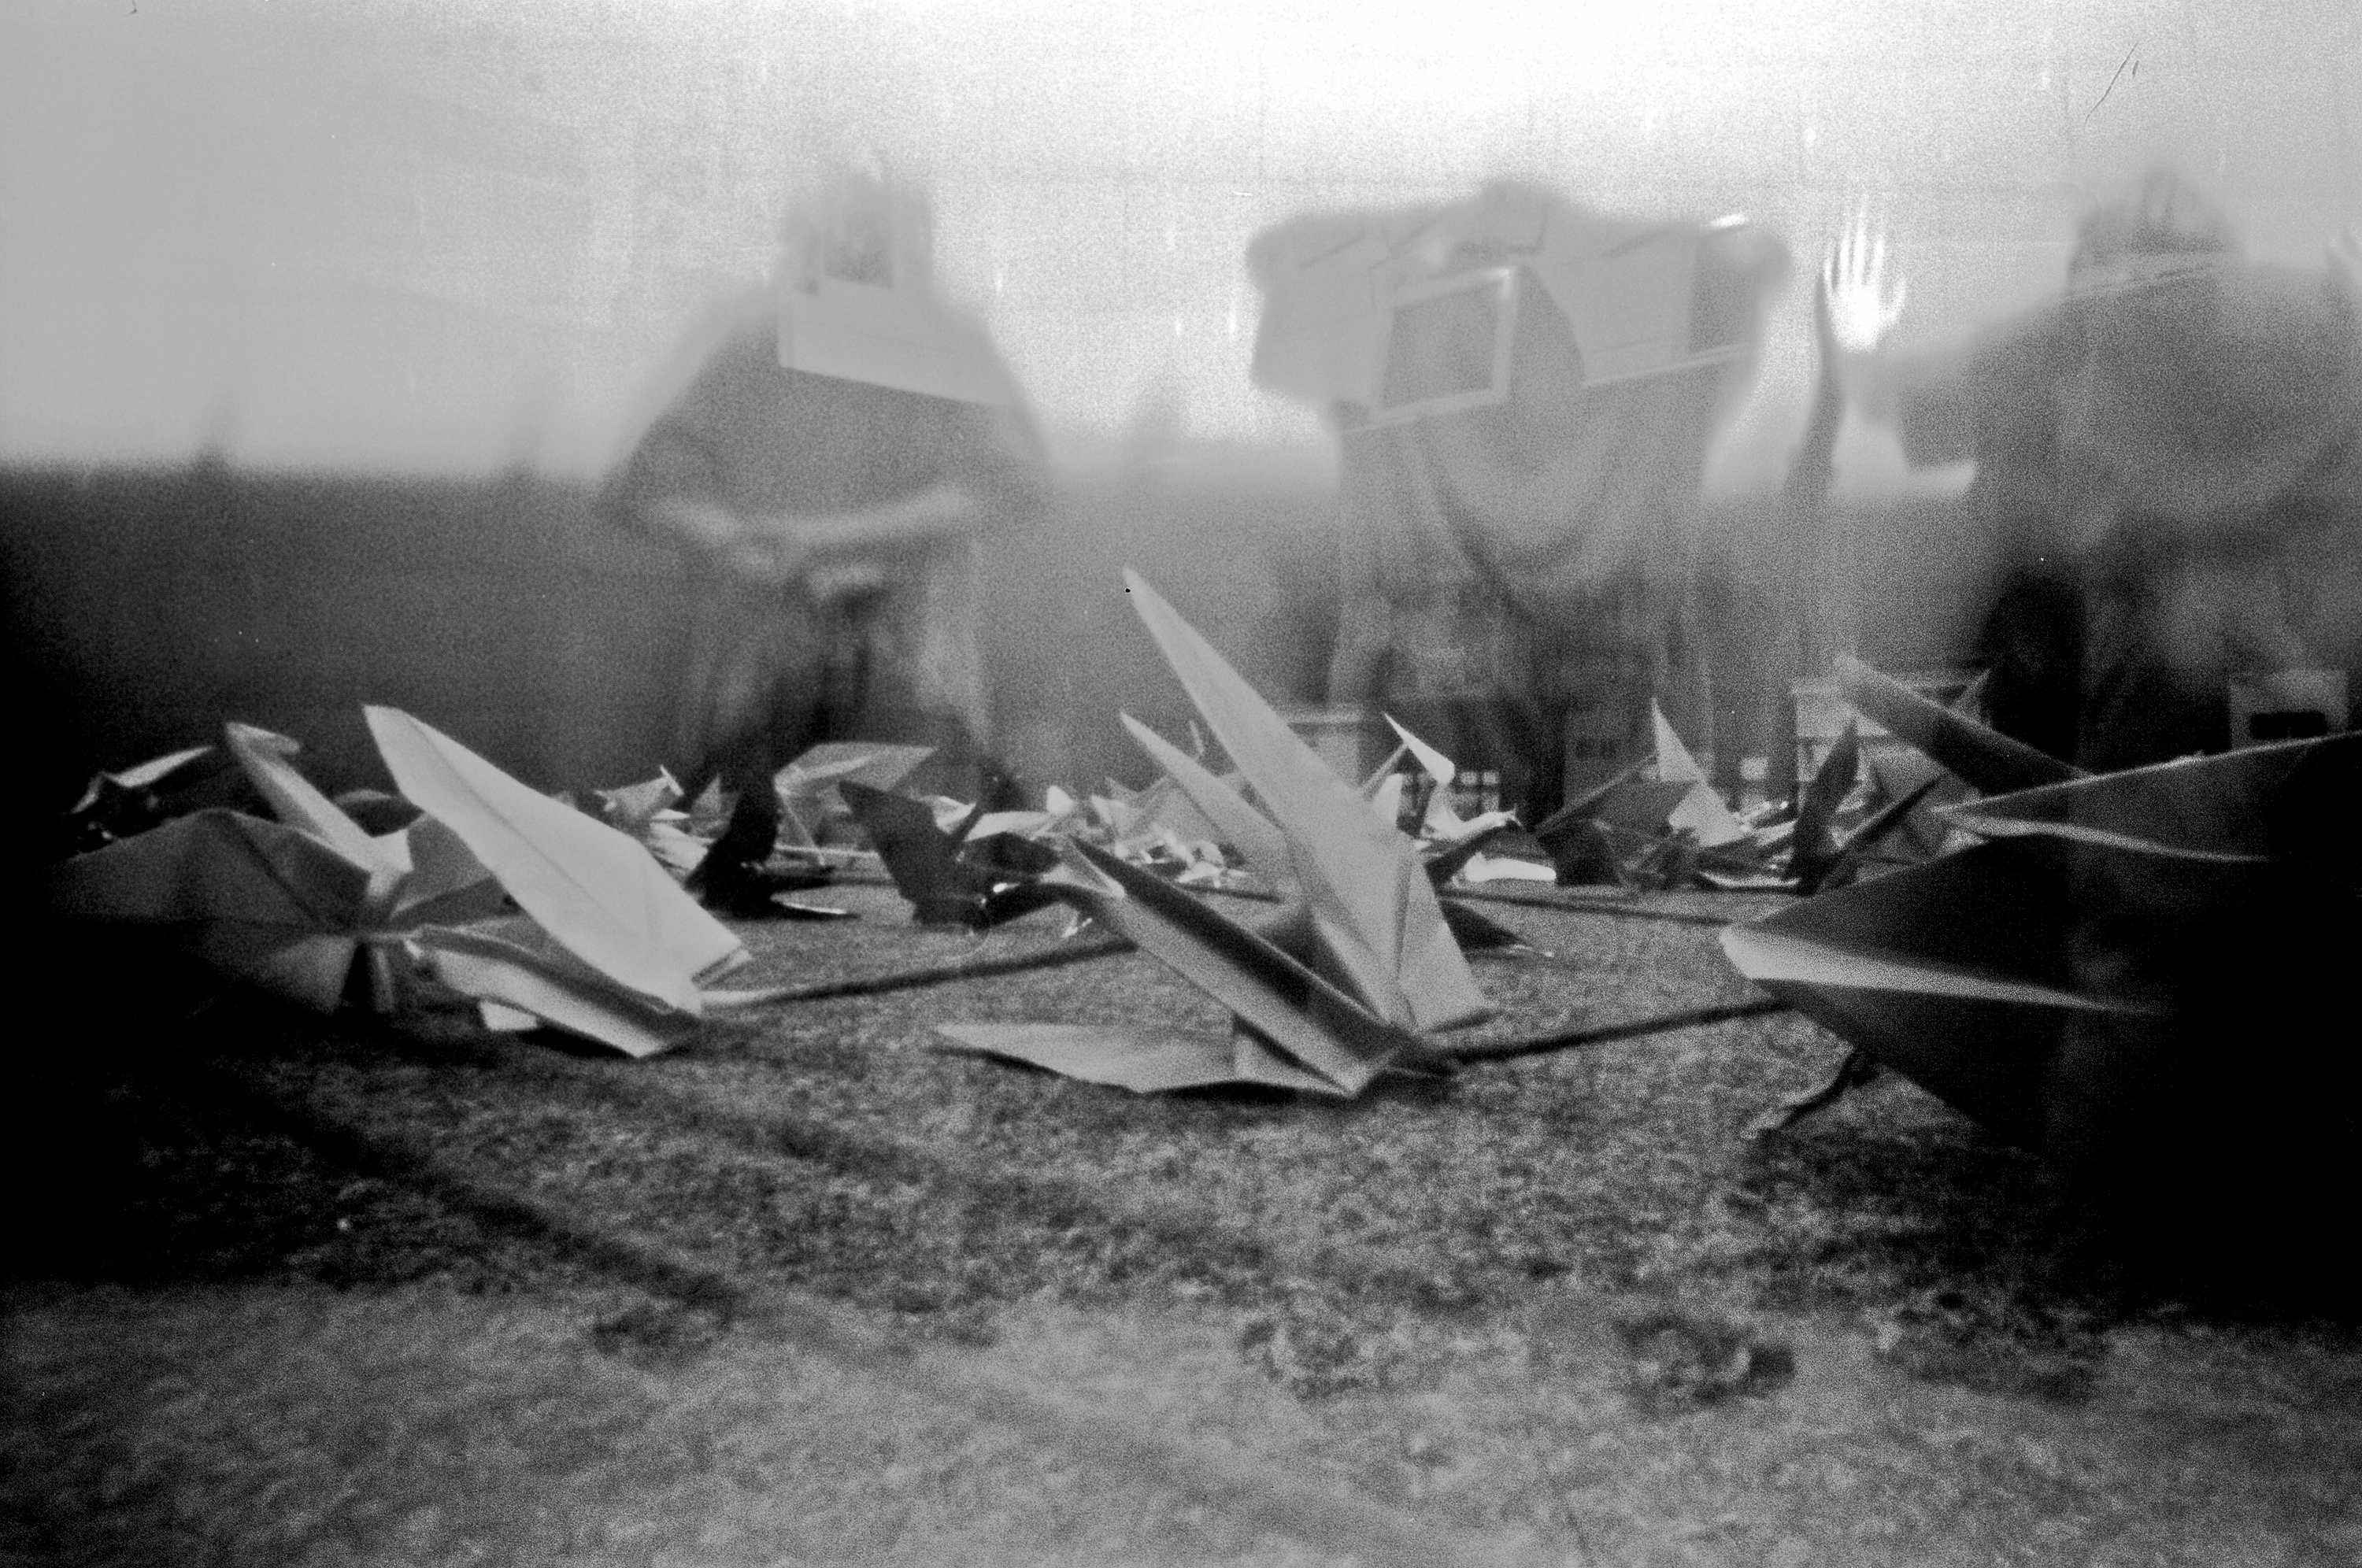 essay bibliography prison obscura black and white photo of paper cranes foggy obscured prisoners seated behind them